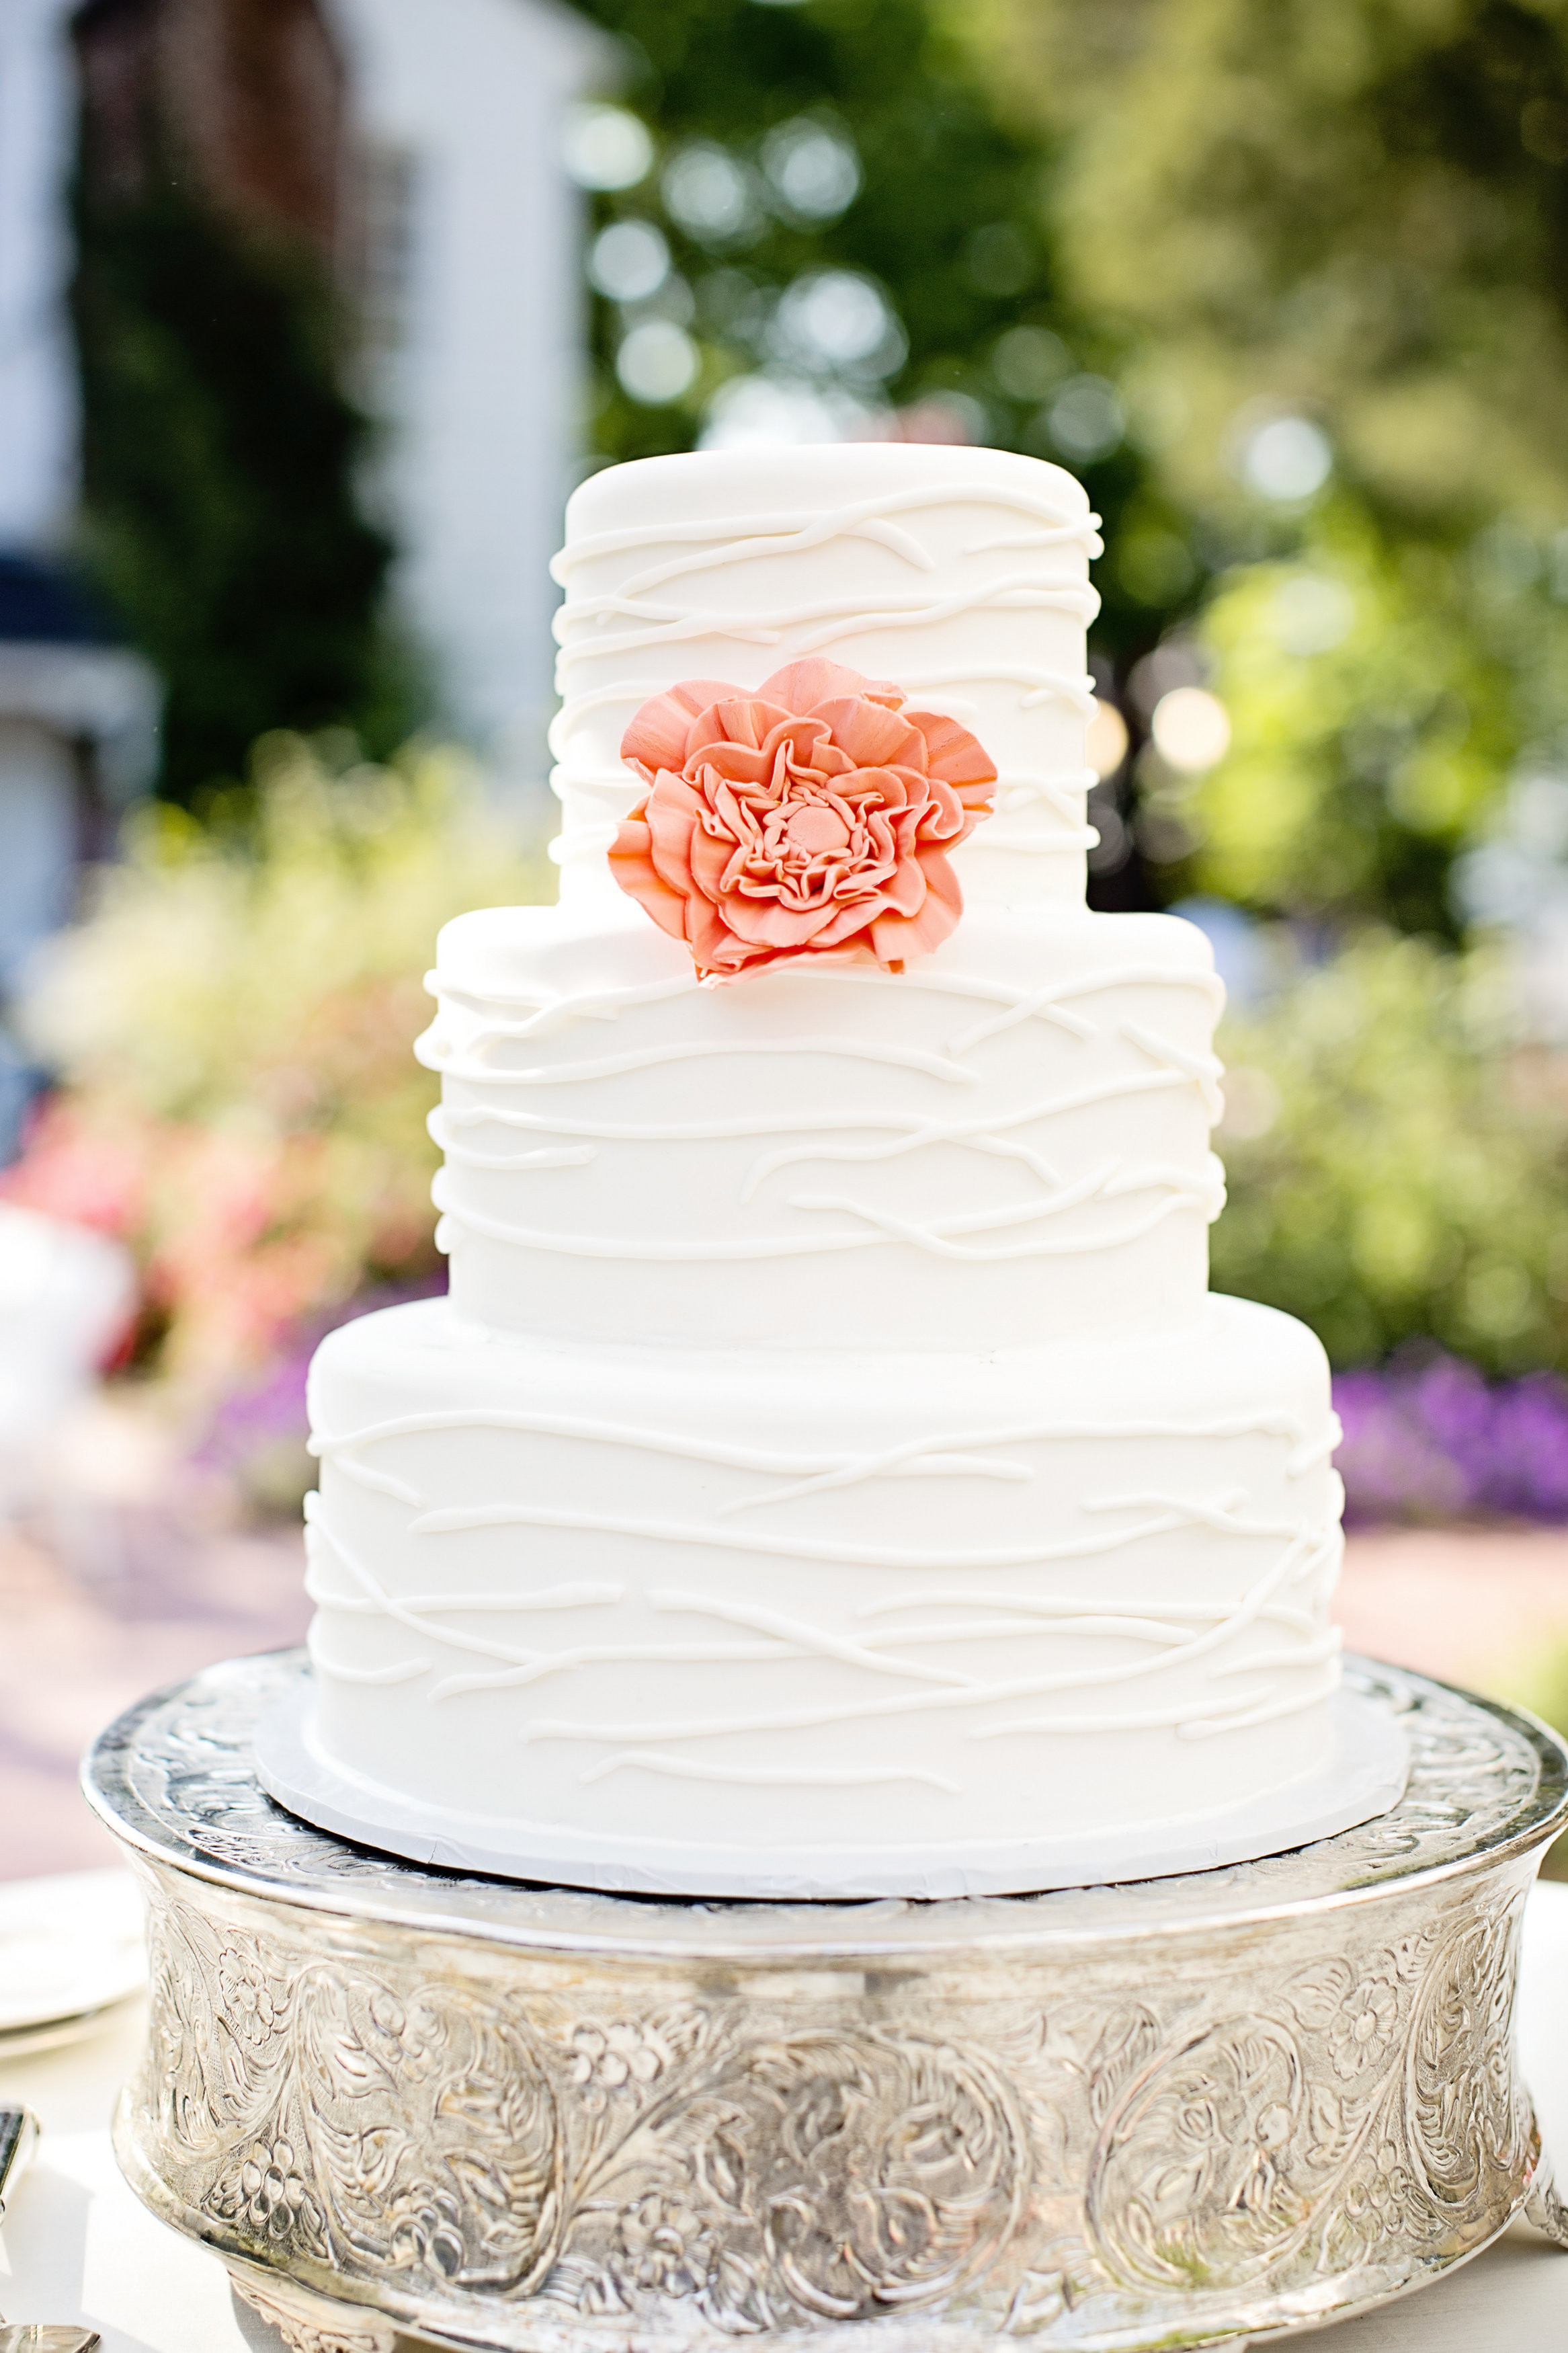 Wedding Cakes Simple  Plant a flower on the wedding cake